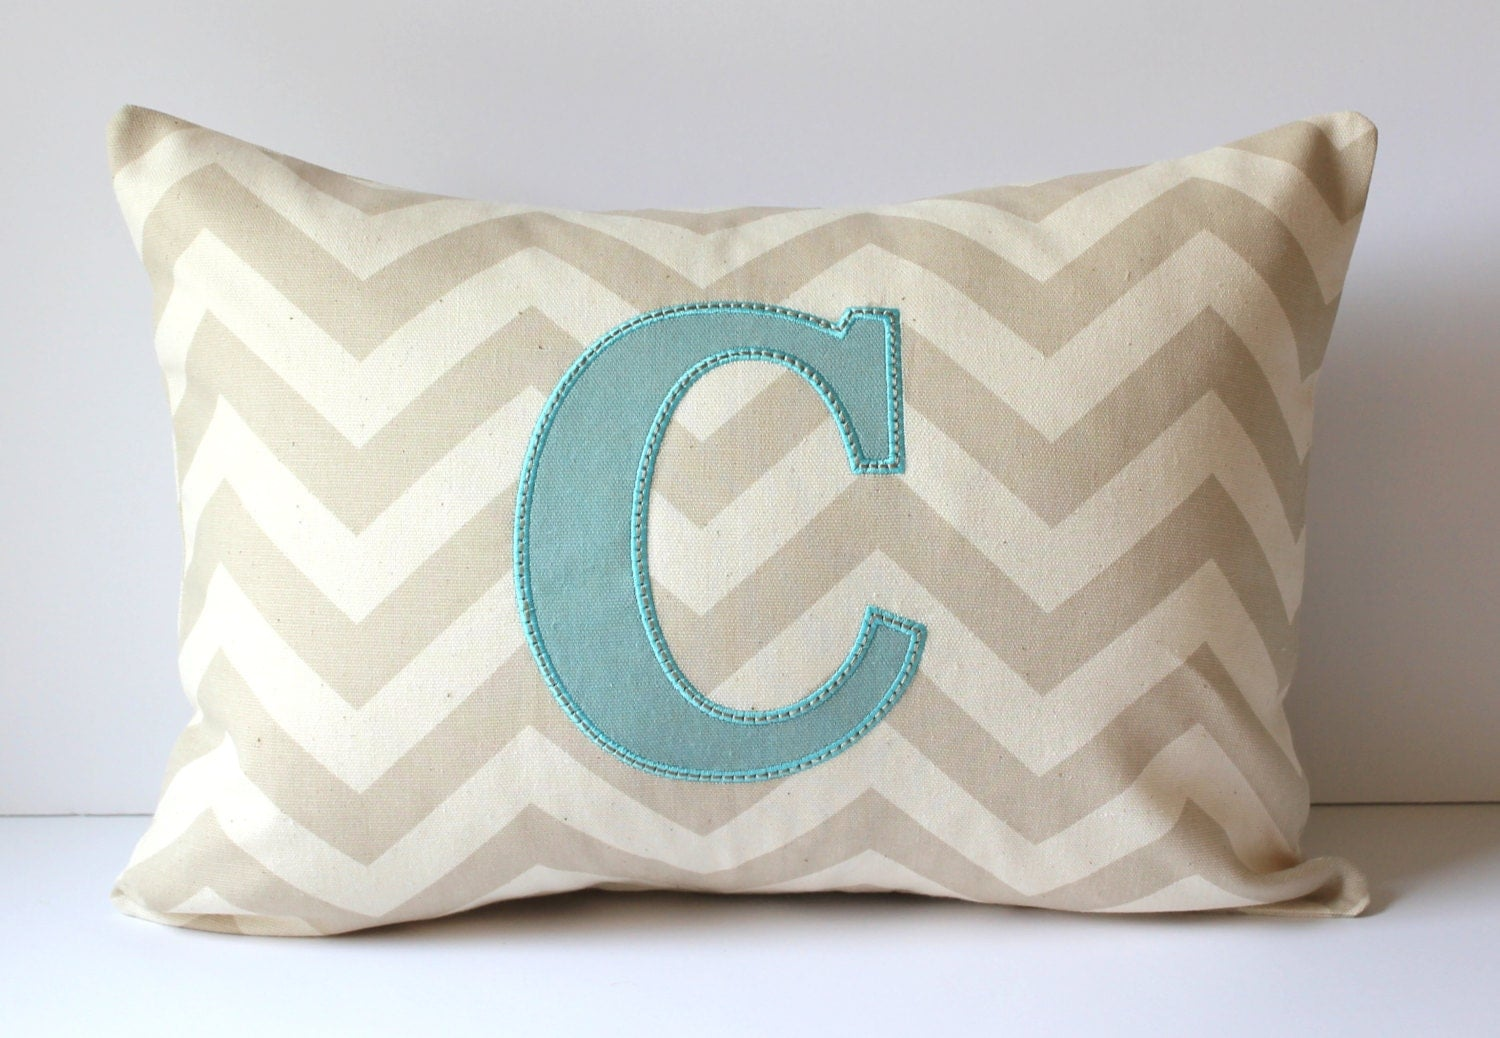 Monogrammed Throw Pillow Covers : APPLIQUE Monogram Decorative Pillow Cover. Letter by SewGracious